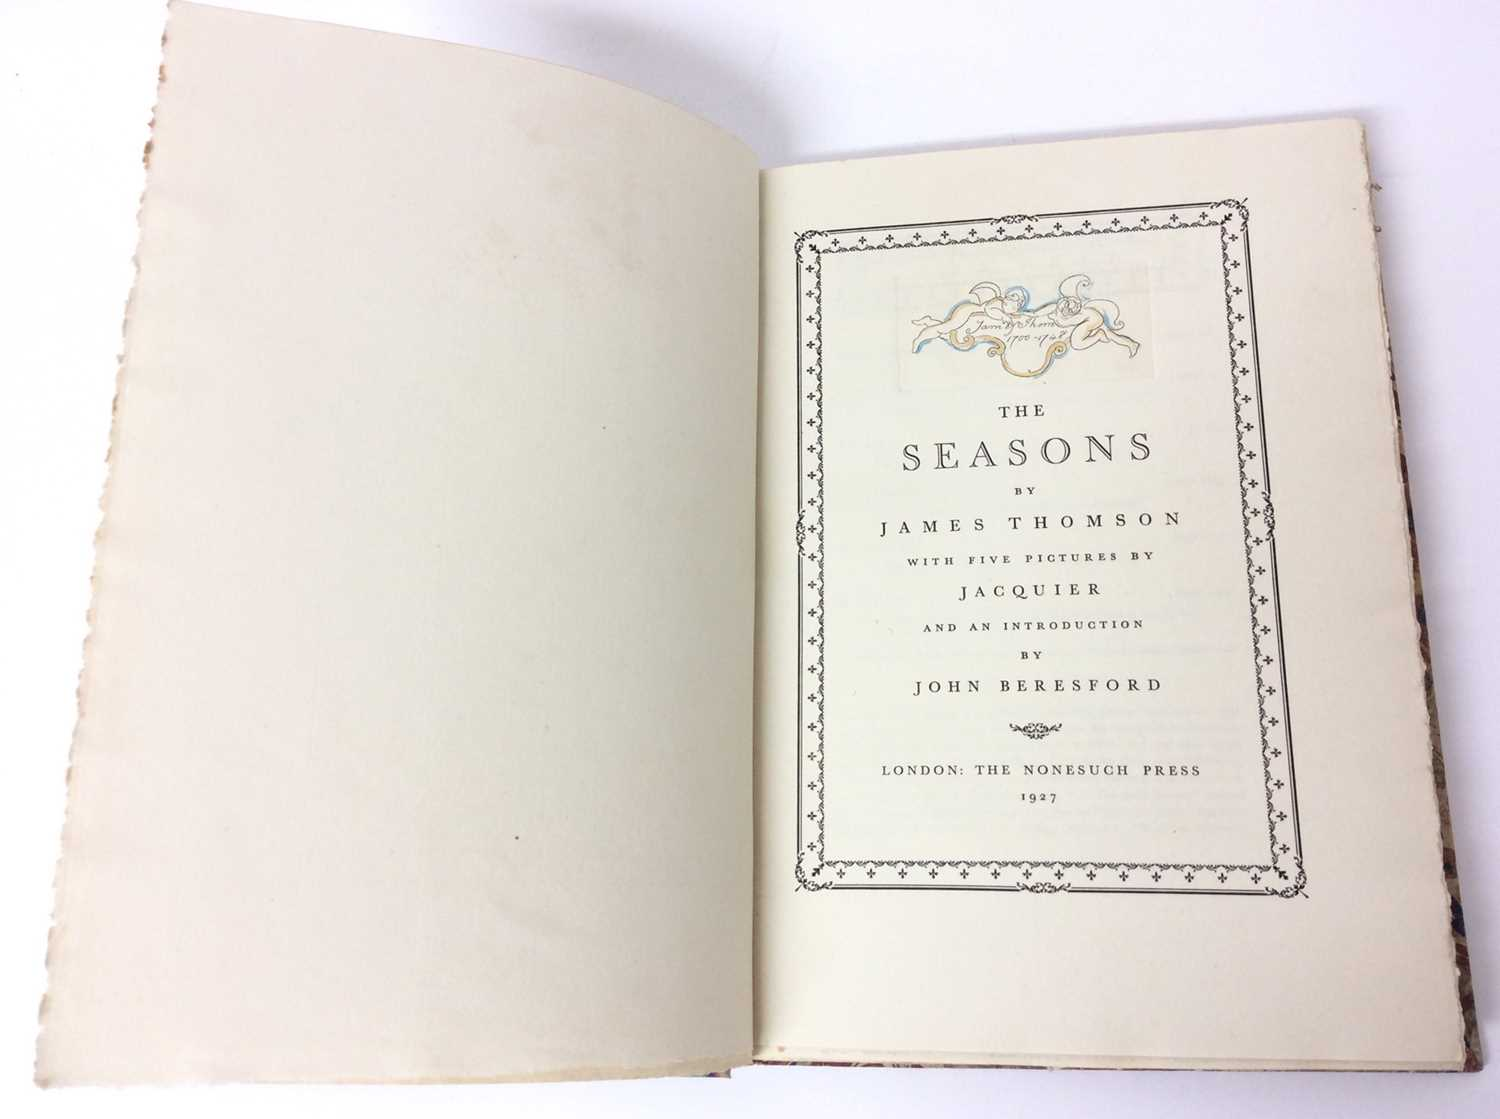 The Seasons by James Thomson, Nonesuch Press 1927, numbered 186 out of 1,500 copies, 1927 - Image 2 of 10